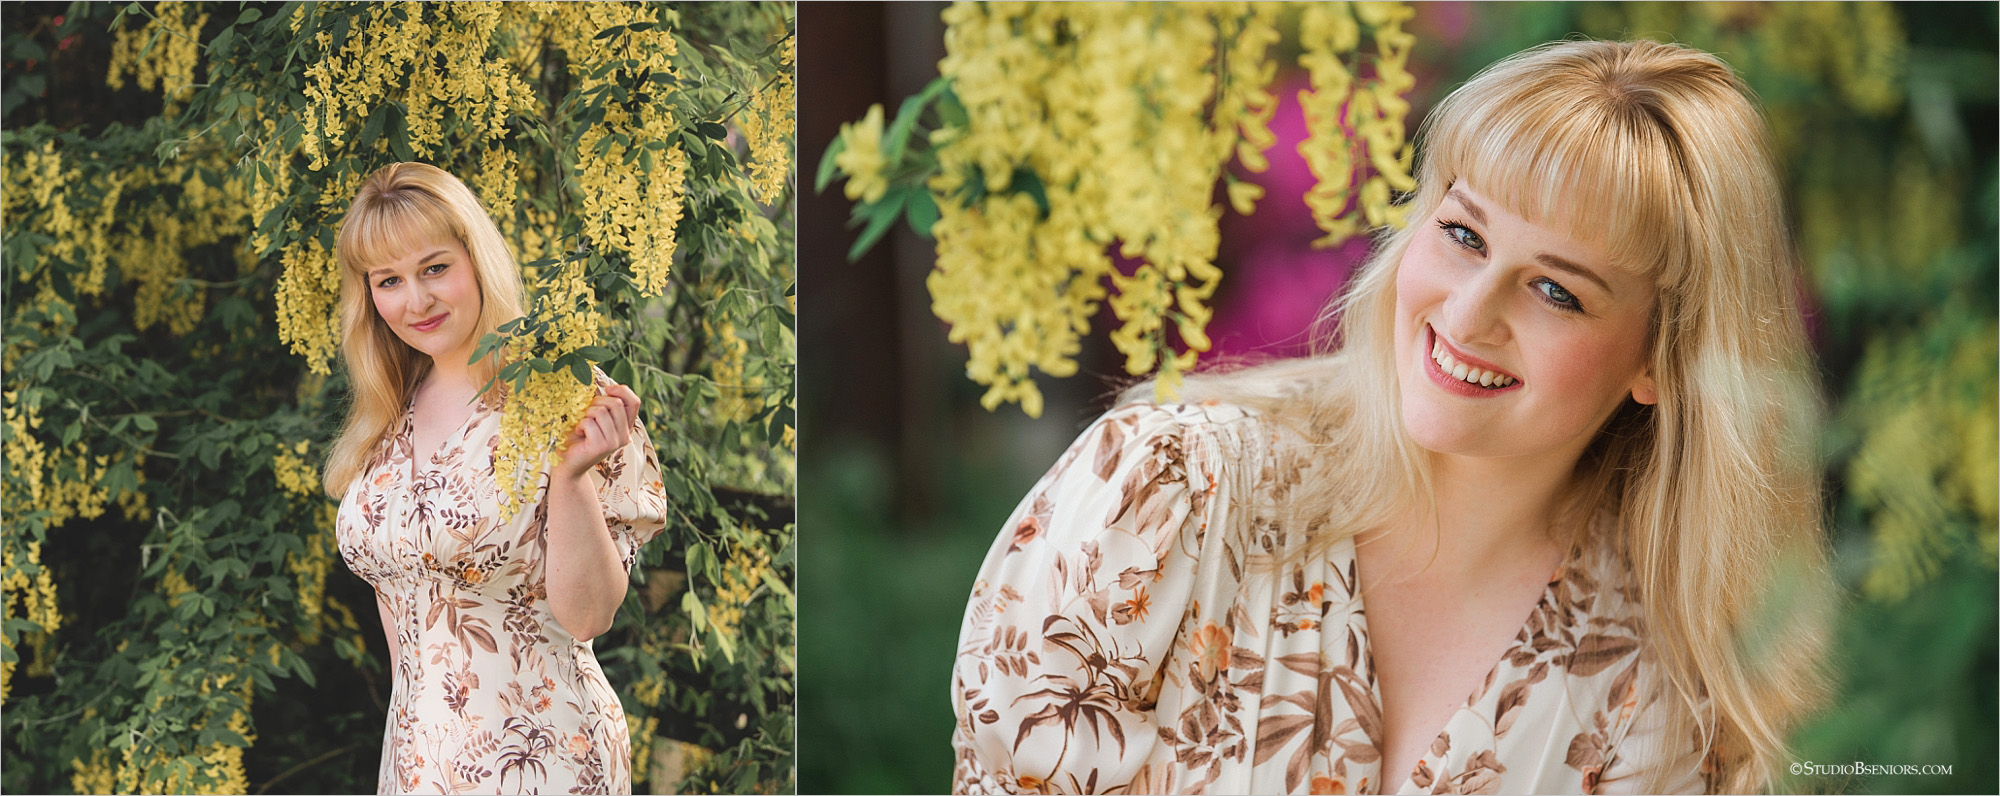 Spring portraits of college senior girl in floral dress in yellow flowers_0067.jpg